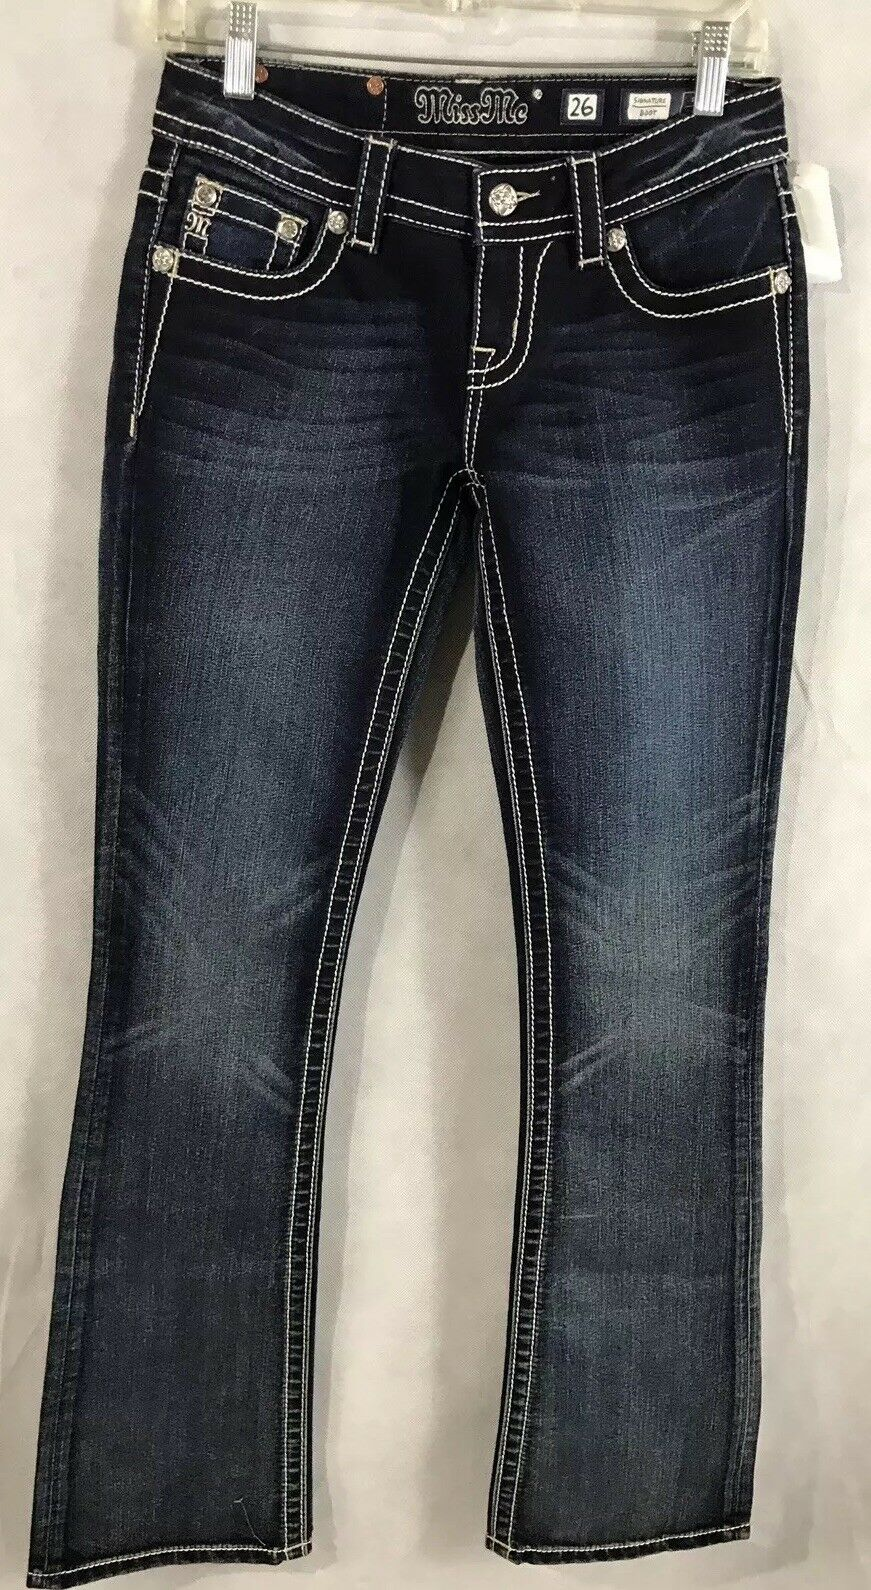 Miss Me NEW Signature Boot Cut Jeans 26 Dark Wash Low Rise Stretch Inseam 33